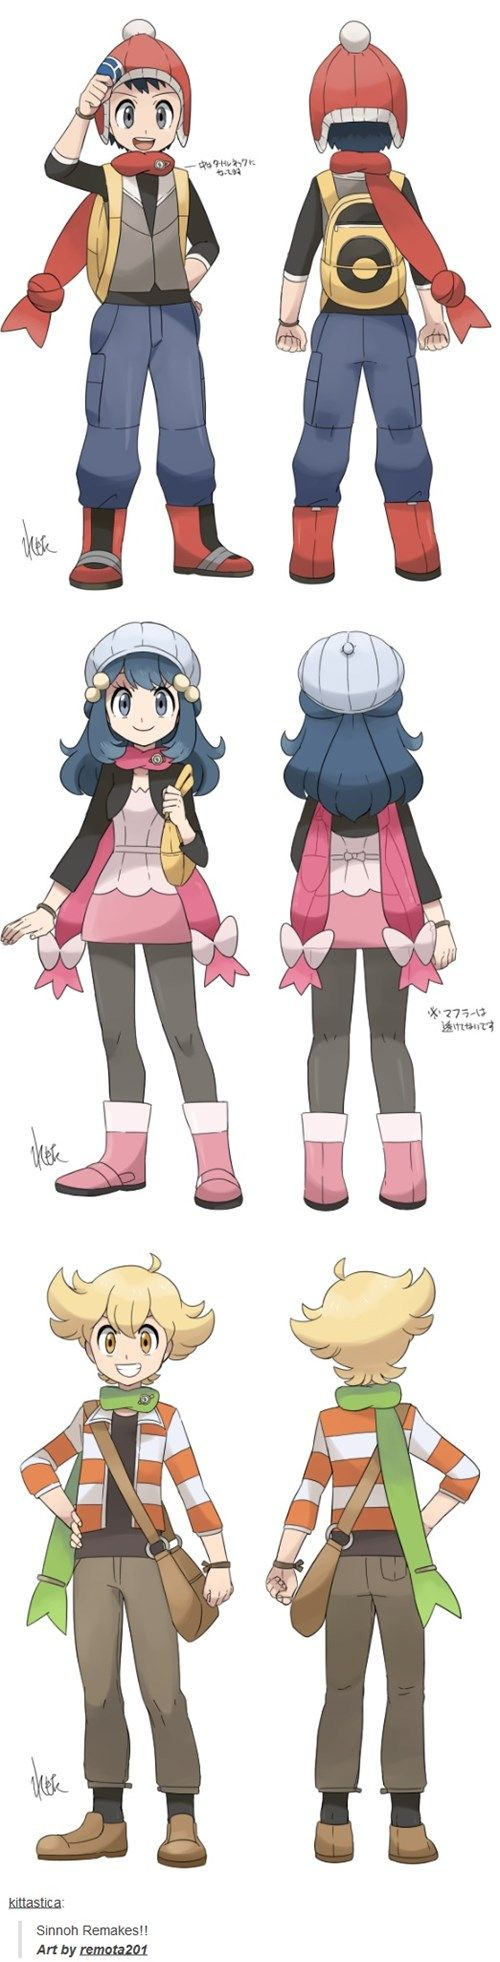 Pokemon - I Demand For Sinnoh Remakes!<< some one else shares my dream